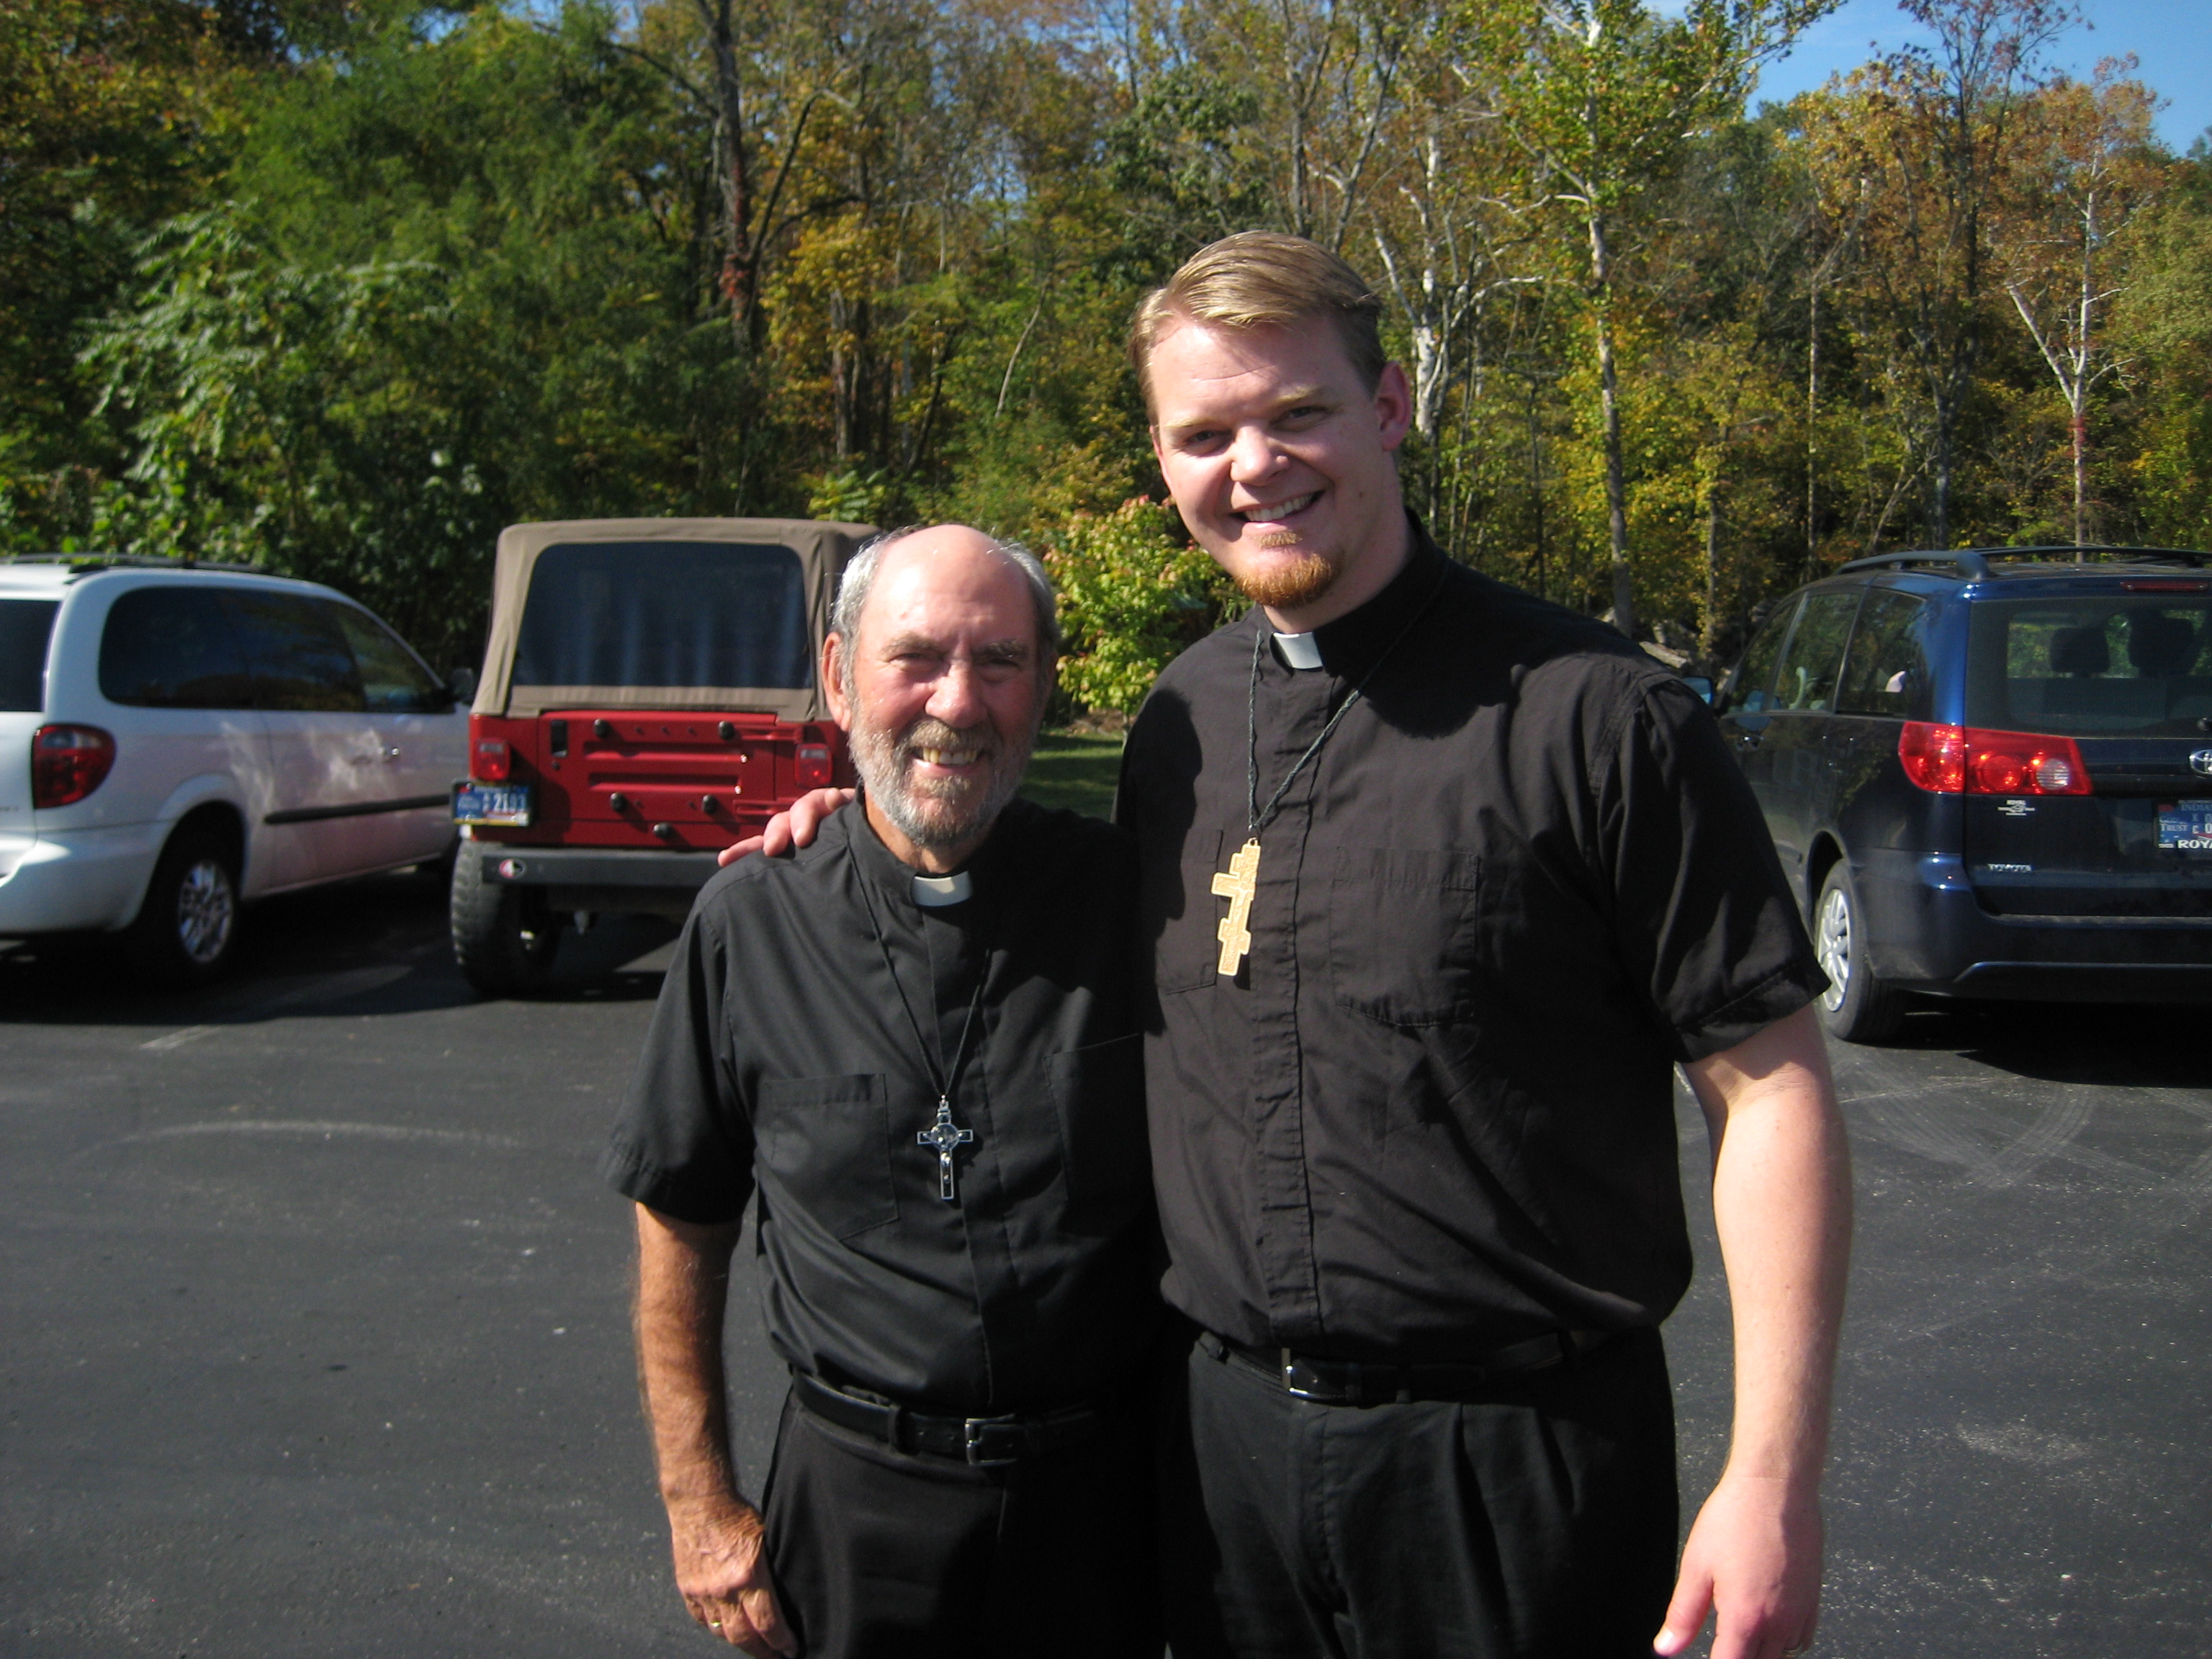 Fr. Athanasius Wilson and Fr. Peter Jon Gillquist